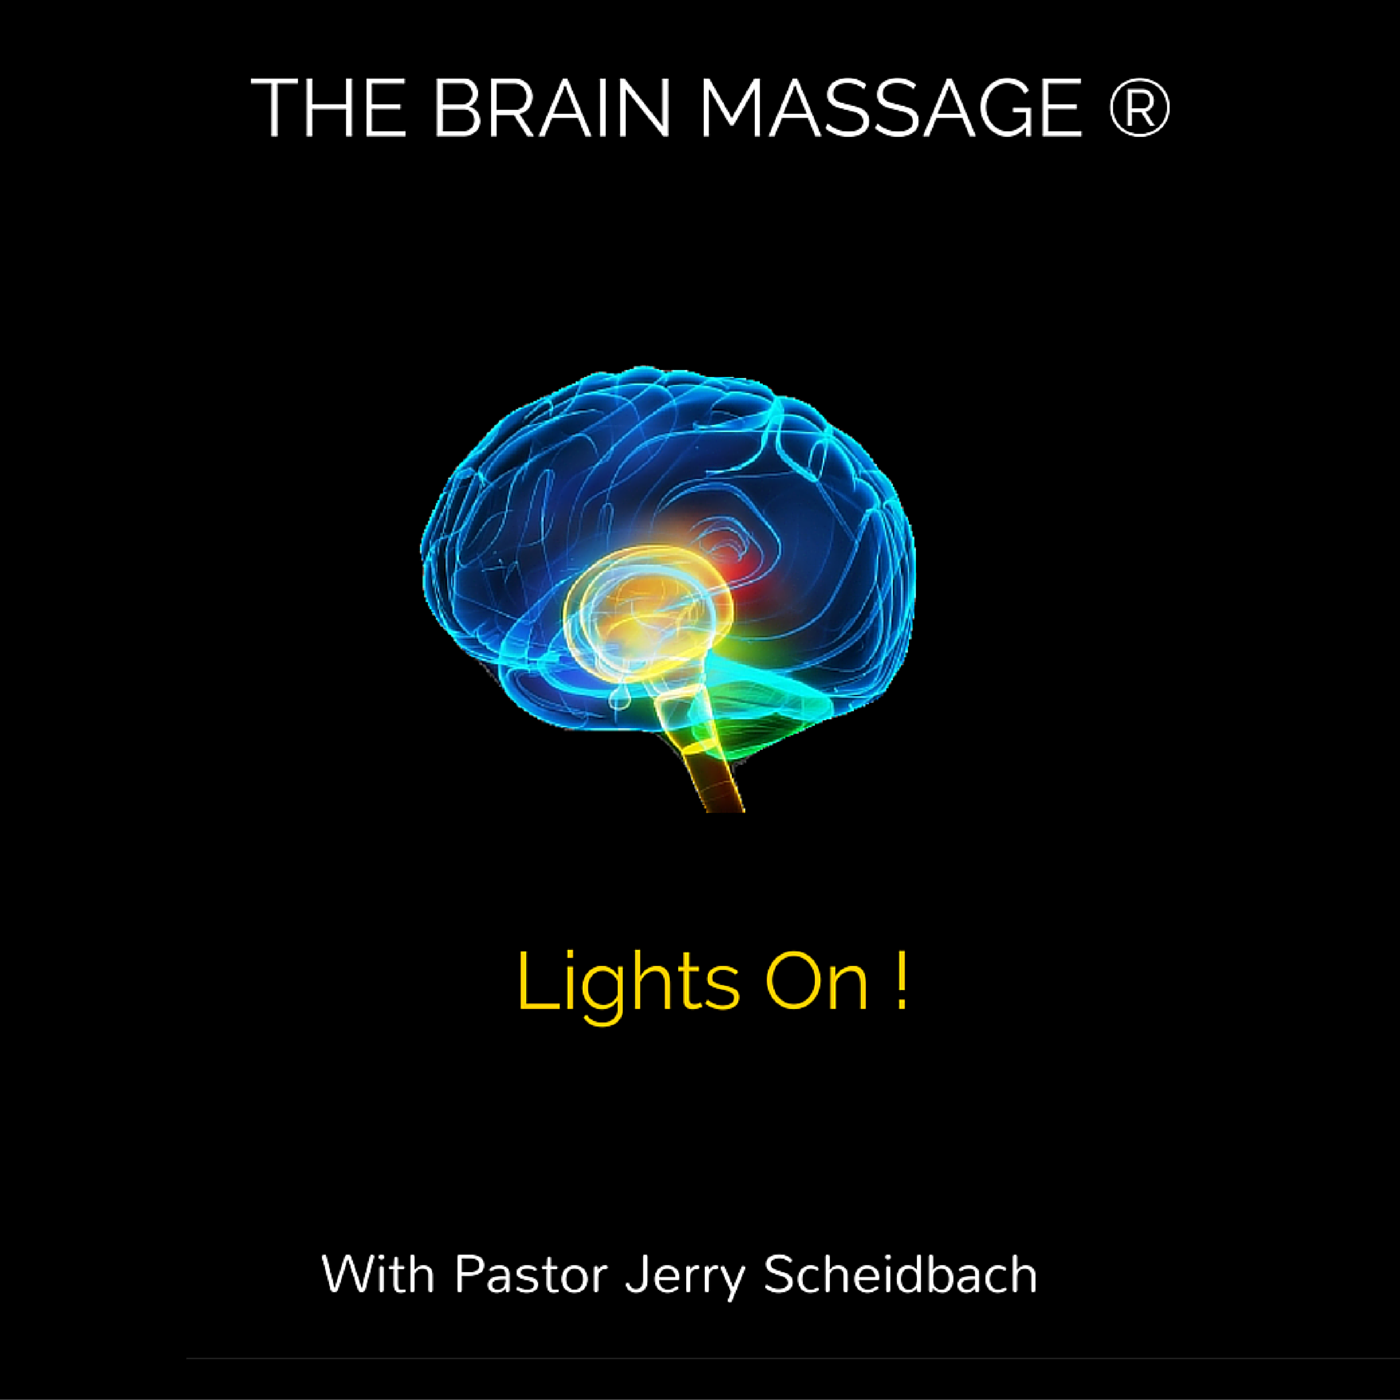 The Brain Massage!